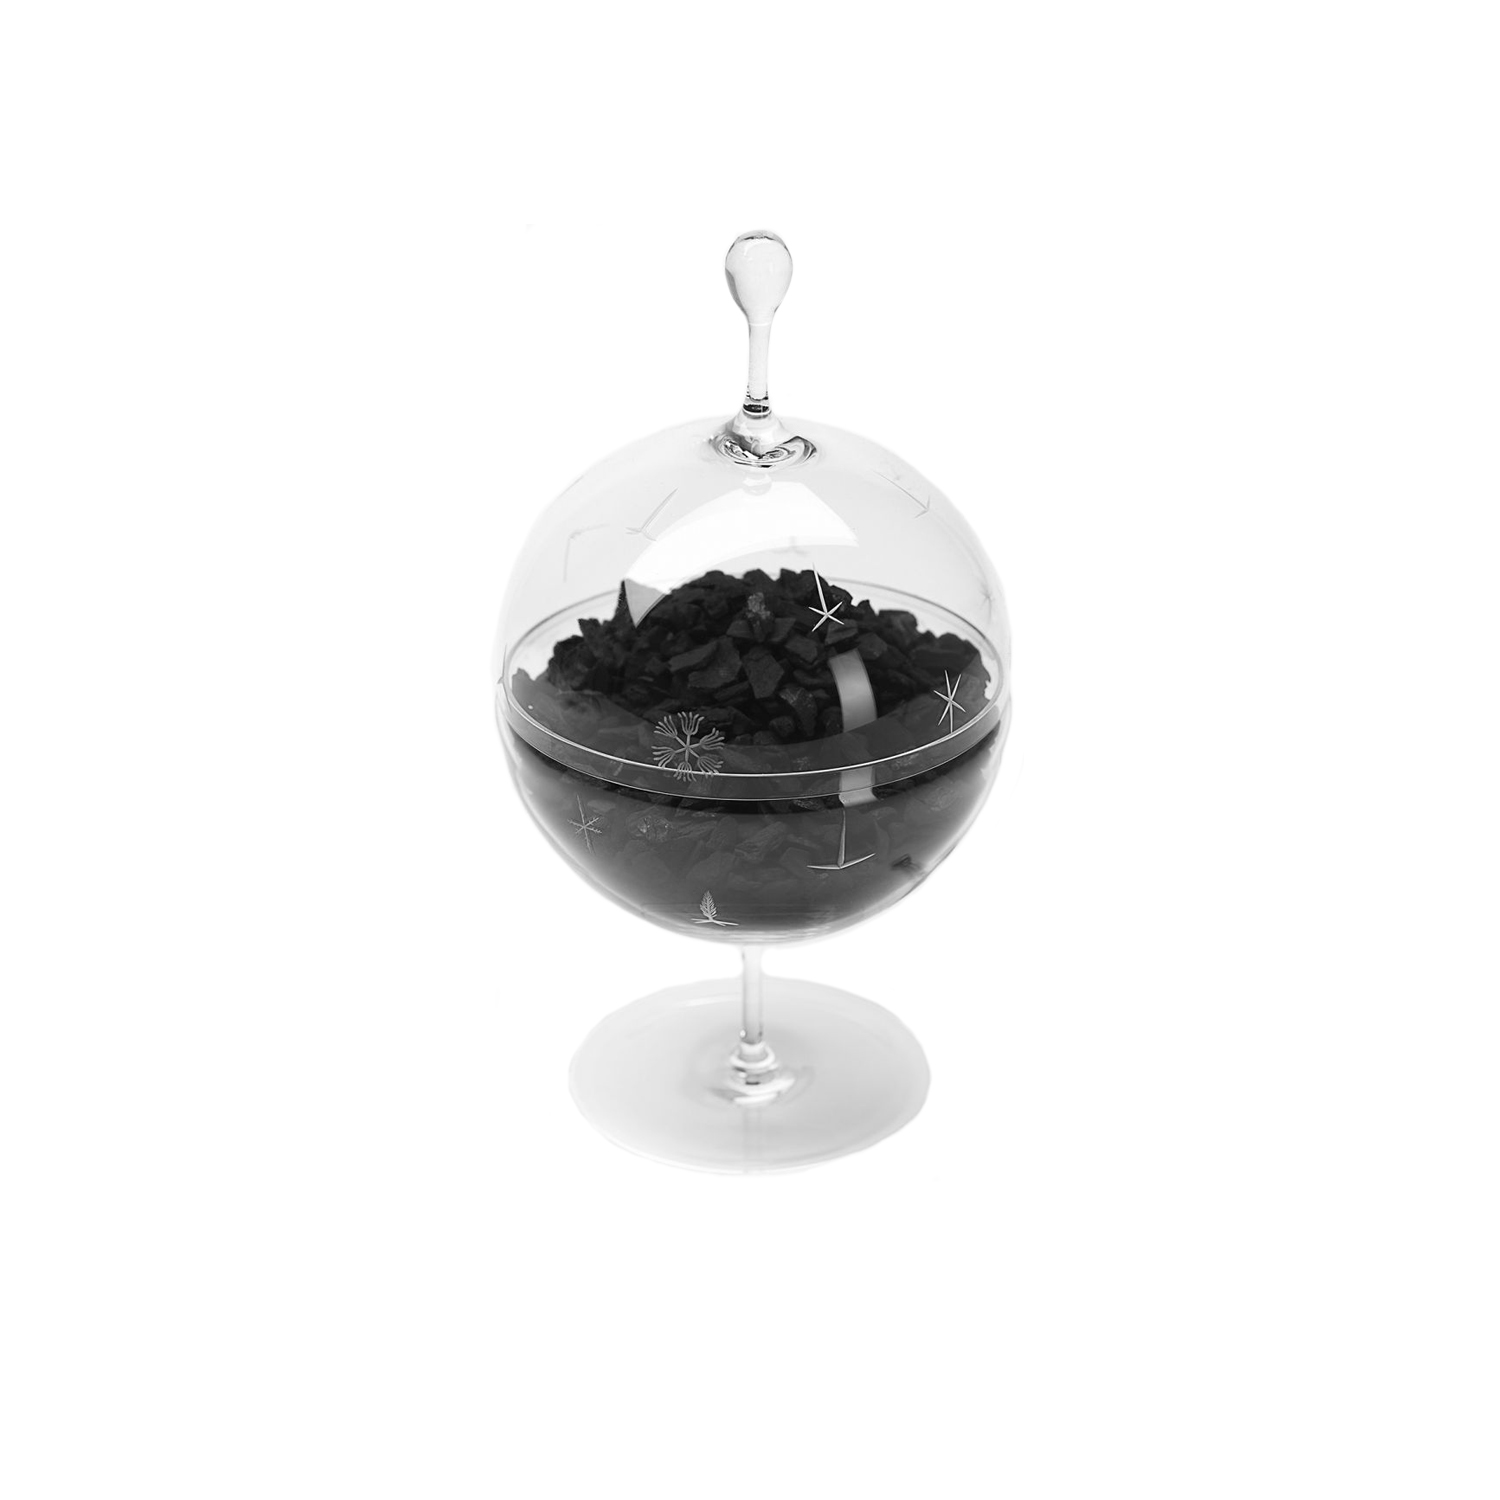 Still Charcoal Dish Water Bacteria - What are the true luxury goods of today? For us, it's not glitter, gold, or heavy cut crystal vases. People of today need carefully designed and well-crafted objects. Pure drinking water is a treasure and this drinking set – STILL – reminds us to cherish and enjoy our world's most important resource. Formafantasma didn't come back with a single piece, but instead with a series that tells an evocative story. | Matter of Stuff